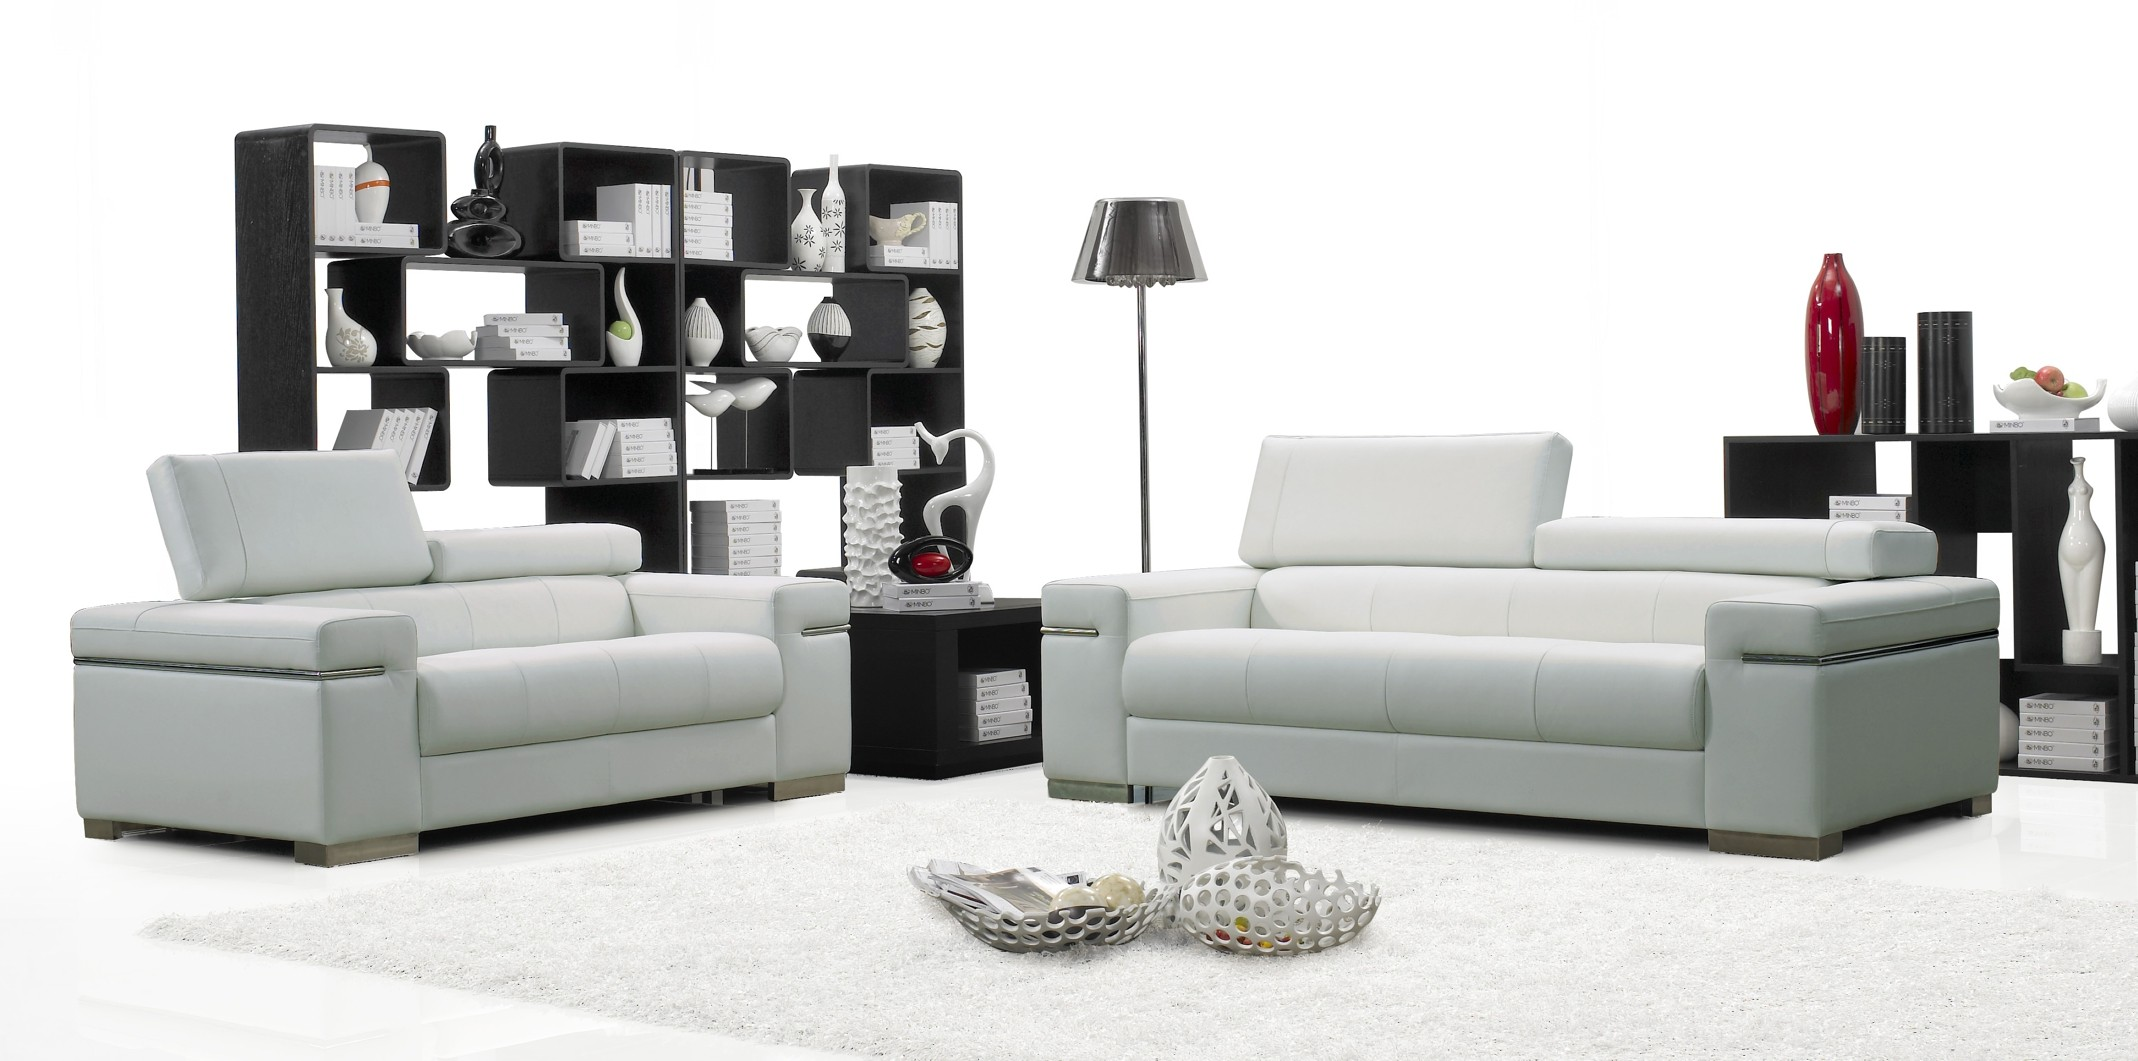 True modern furniture online homesfeed for Contemporary furniture decor